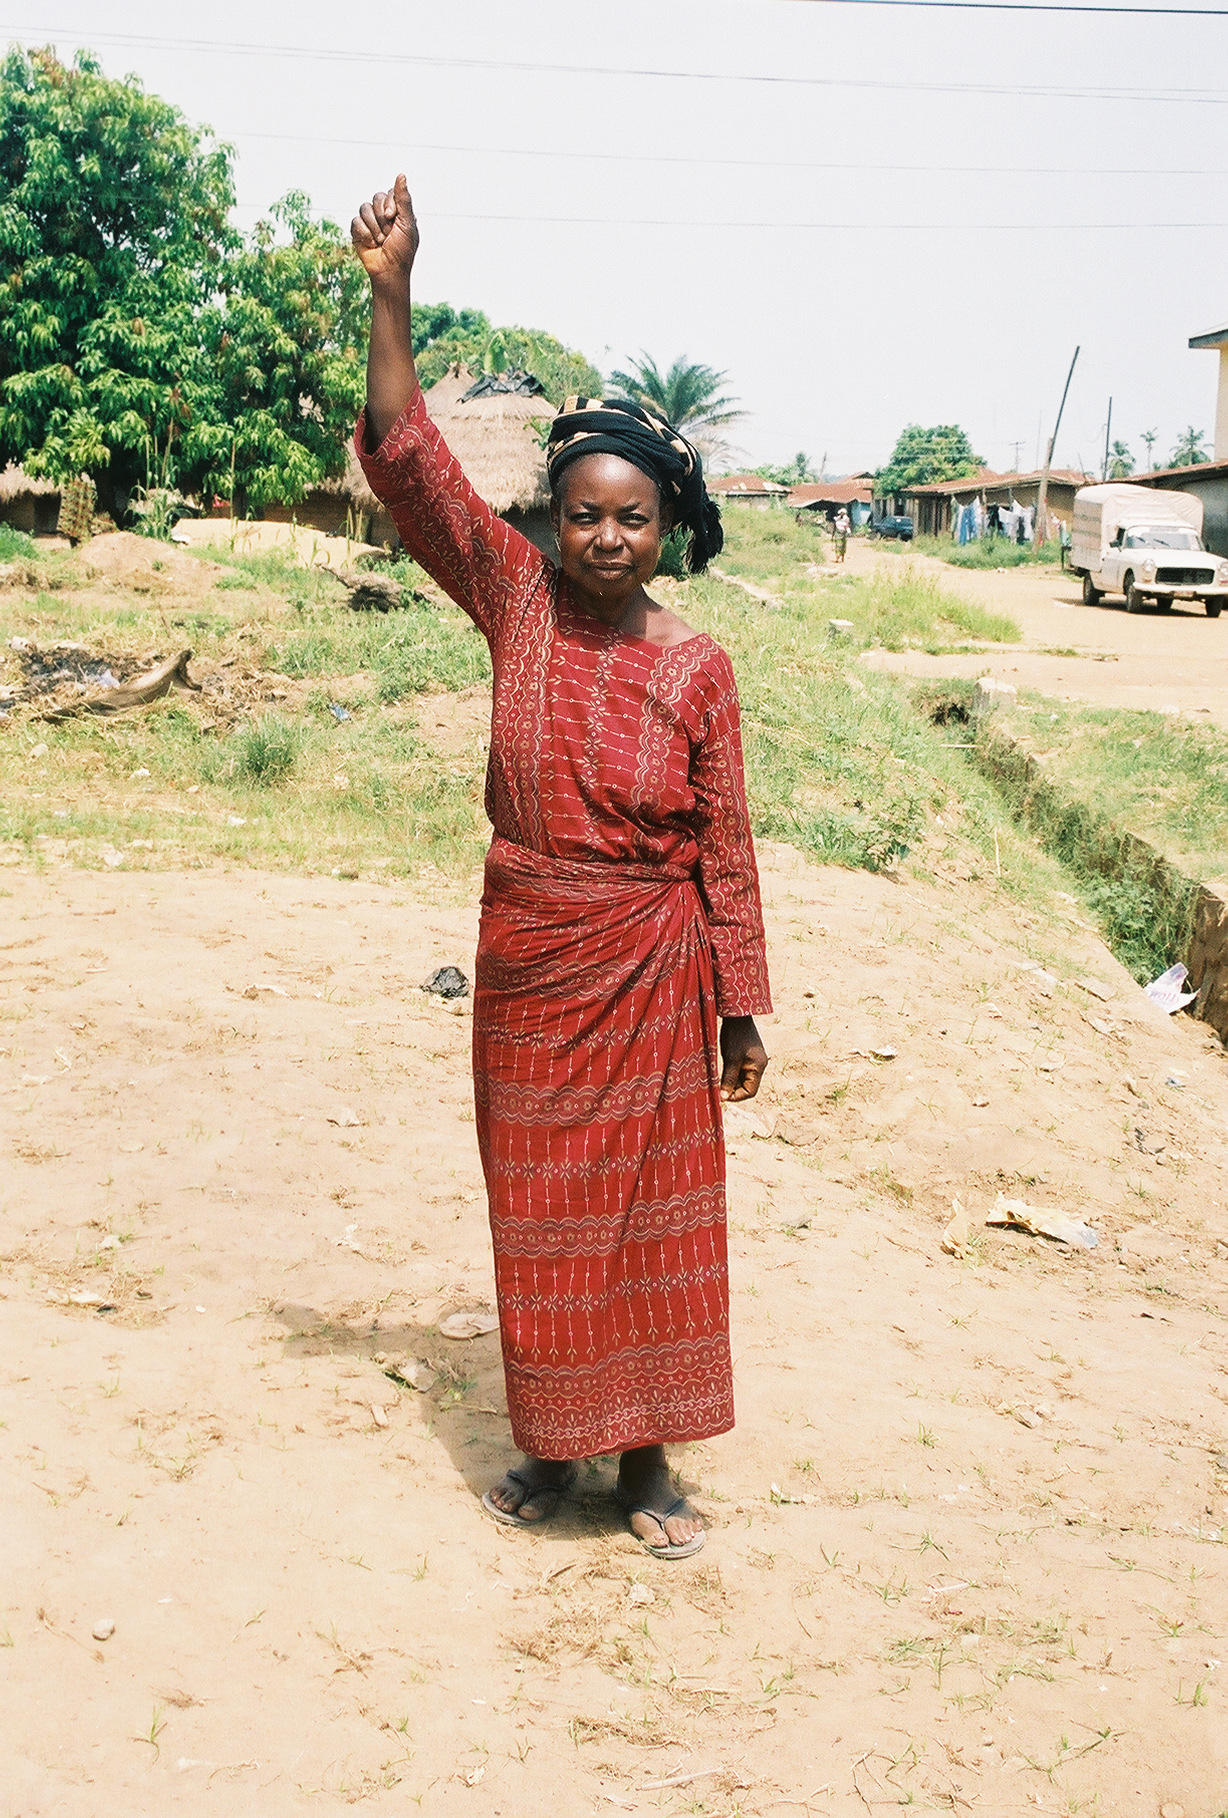 This lady in Nigeria, West Africa lived in a village outside of town.  We went to her village with the message of Jesus Christ.  She believed and was healed of a paralyzed arm!